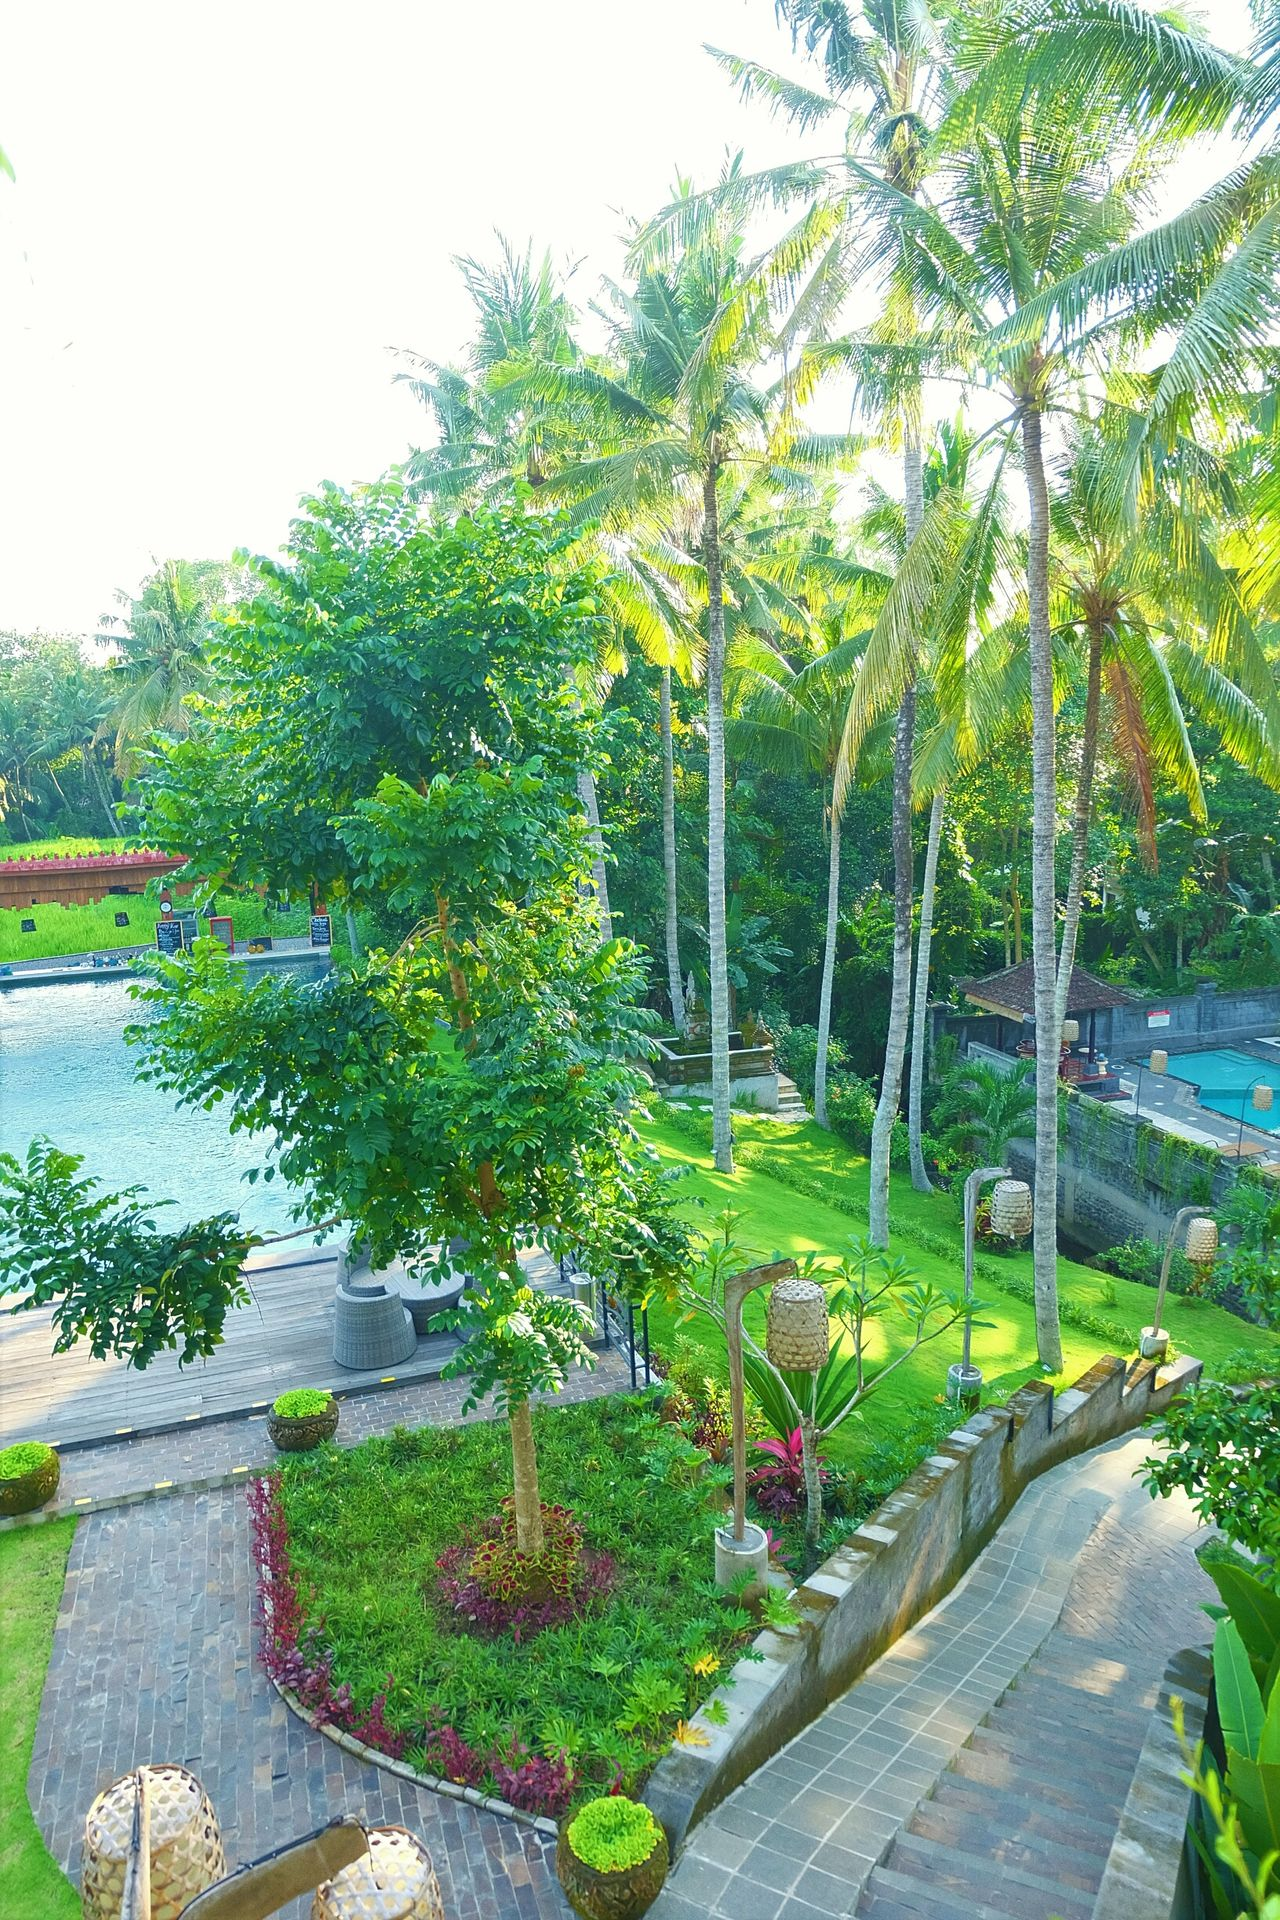 The Artini Resort, Ubud Ubud, Bali HotelsandResorts Hotels And Resorts Hotel View Garden Photography Day Tree Beauty In Nature Swimming Pool Green Color Outdoors Holiday - Event Holidays Holiday Nature Photography Hotel Hotelview Togetherness Resort Hotel Hotelpool